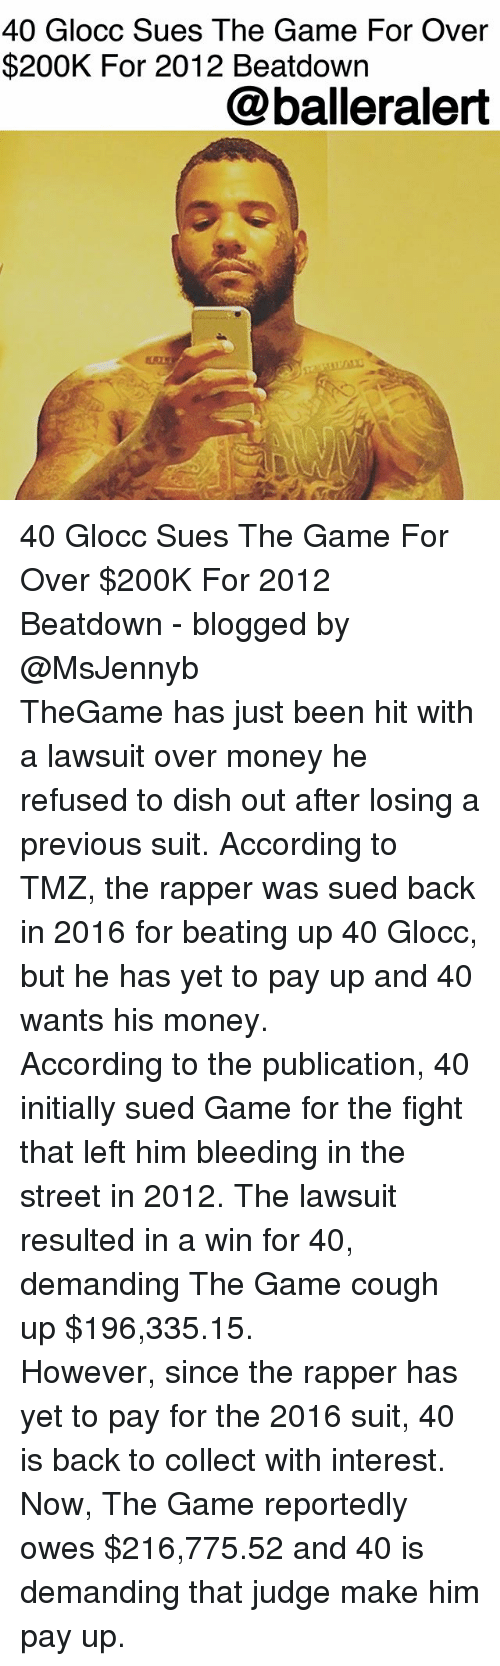 Memes, Money, and The Game: 40 Glocc Sues The Game For Over  $200K For 2012 Beatdown  @balleralert 40 Glocc Sues The Game For Over $200K For 2012 Beatdown - blogged by @MsJennyb ⠀⠀⠀⠀⠀⠀⠀ ⠀⠀⠀⠀⠀⠀⠀ TheGame has just been hit with a lawsuit over money he refused to dish out after losing a previous suit. According to TMZ, the rapper was sued back in 2016 for beating up 40 Glocc, but he has yet to pay up and 40 wants his money. ⠀⠀⠀⠀⠀⠀⠀ ⠀⠀⠀⠀⠀⠀⠀ According to the publication, 40 initially sued Game for the fight that left him bleeding in the street in 2012. The lawsuit resulted in a win for 40, demanding The Game cough up $196,335.15. ⠀⠀⠀⠀⠀⠀⠀ ⠀⠀⠀⠀⠀⠀⠀ However, since the rapper has yet to pay for the 2016 suit, 40 is back to collect with interest. Now, The Game reportedly owes $216,775.52 and 40 is demanding that judge make him pay up.